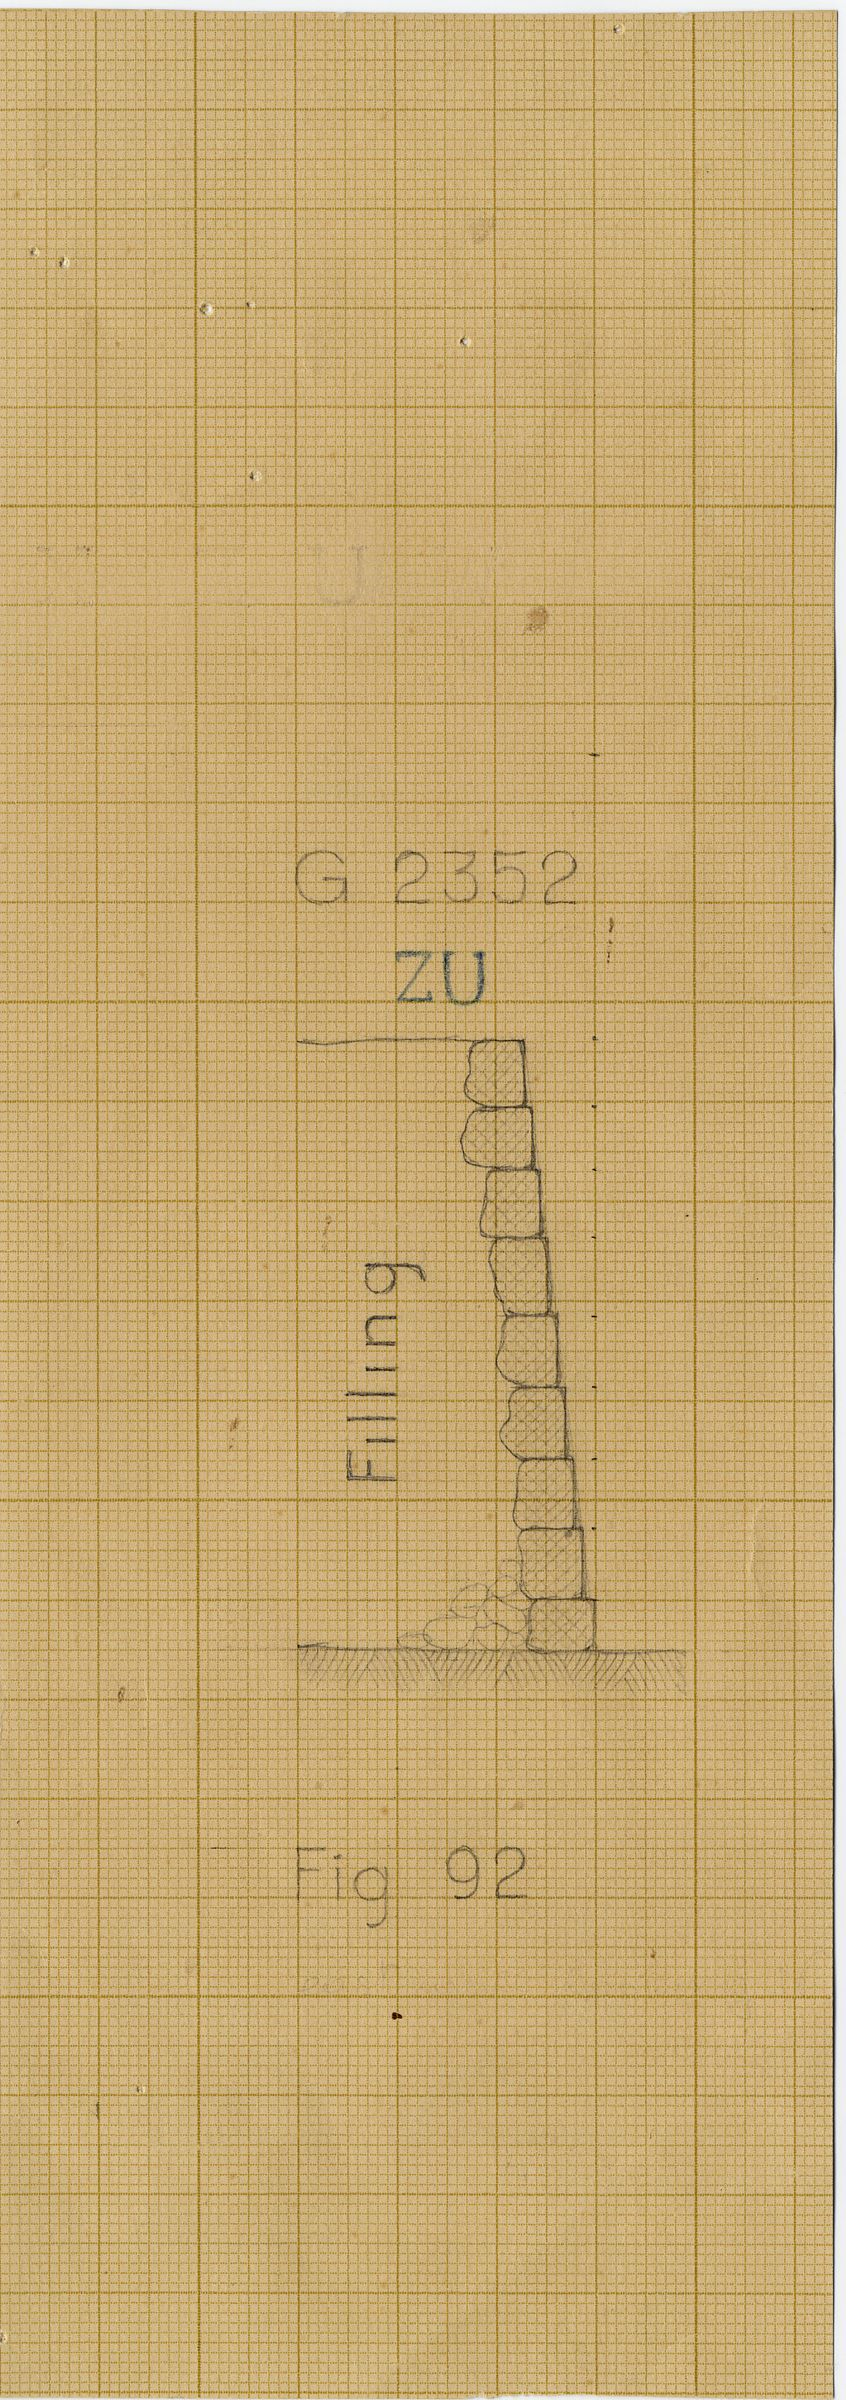 Maps and plans: G 2352, Section of casing